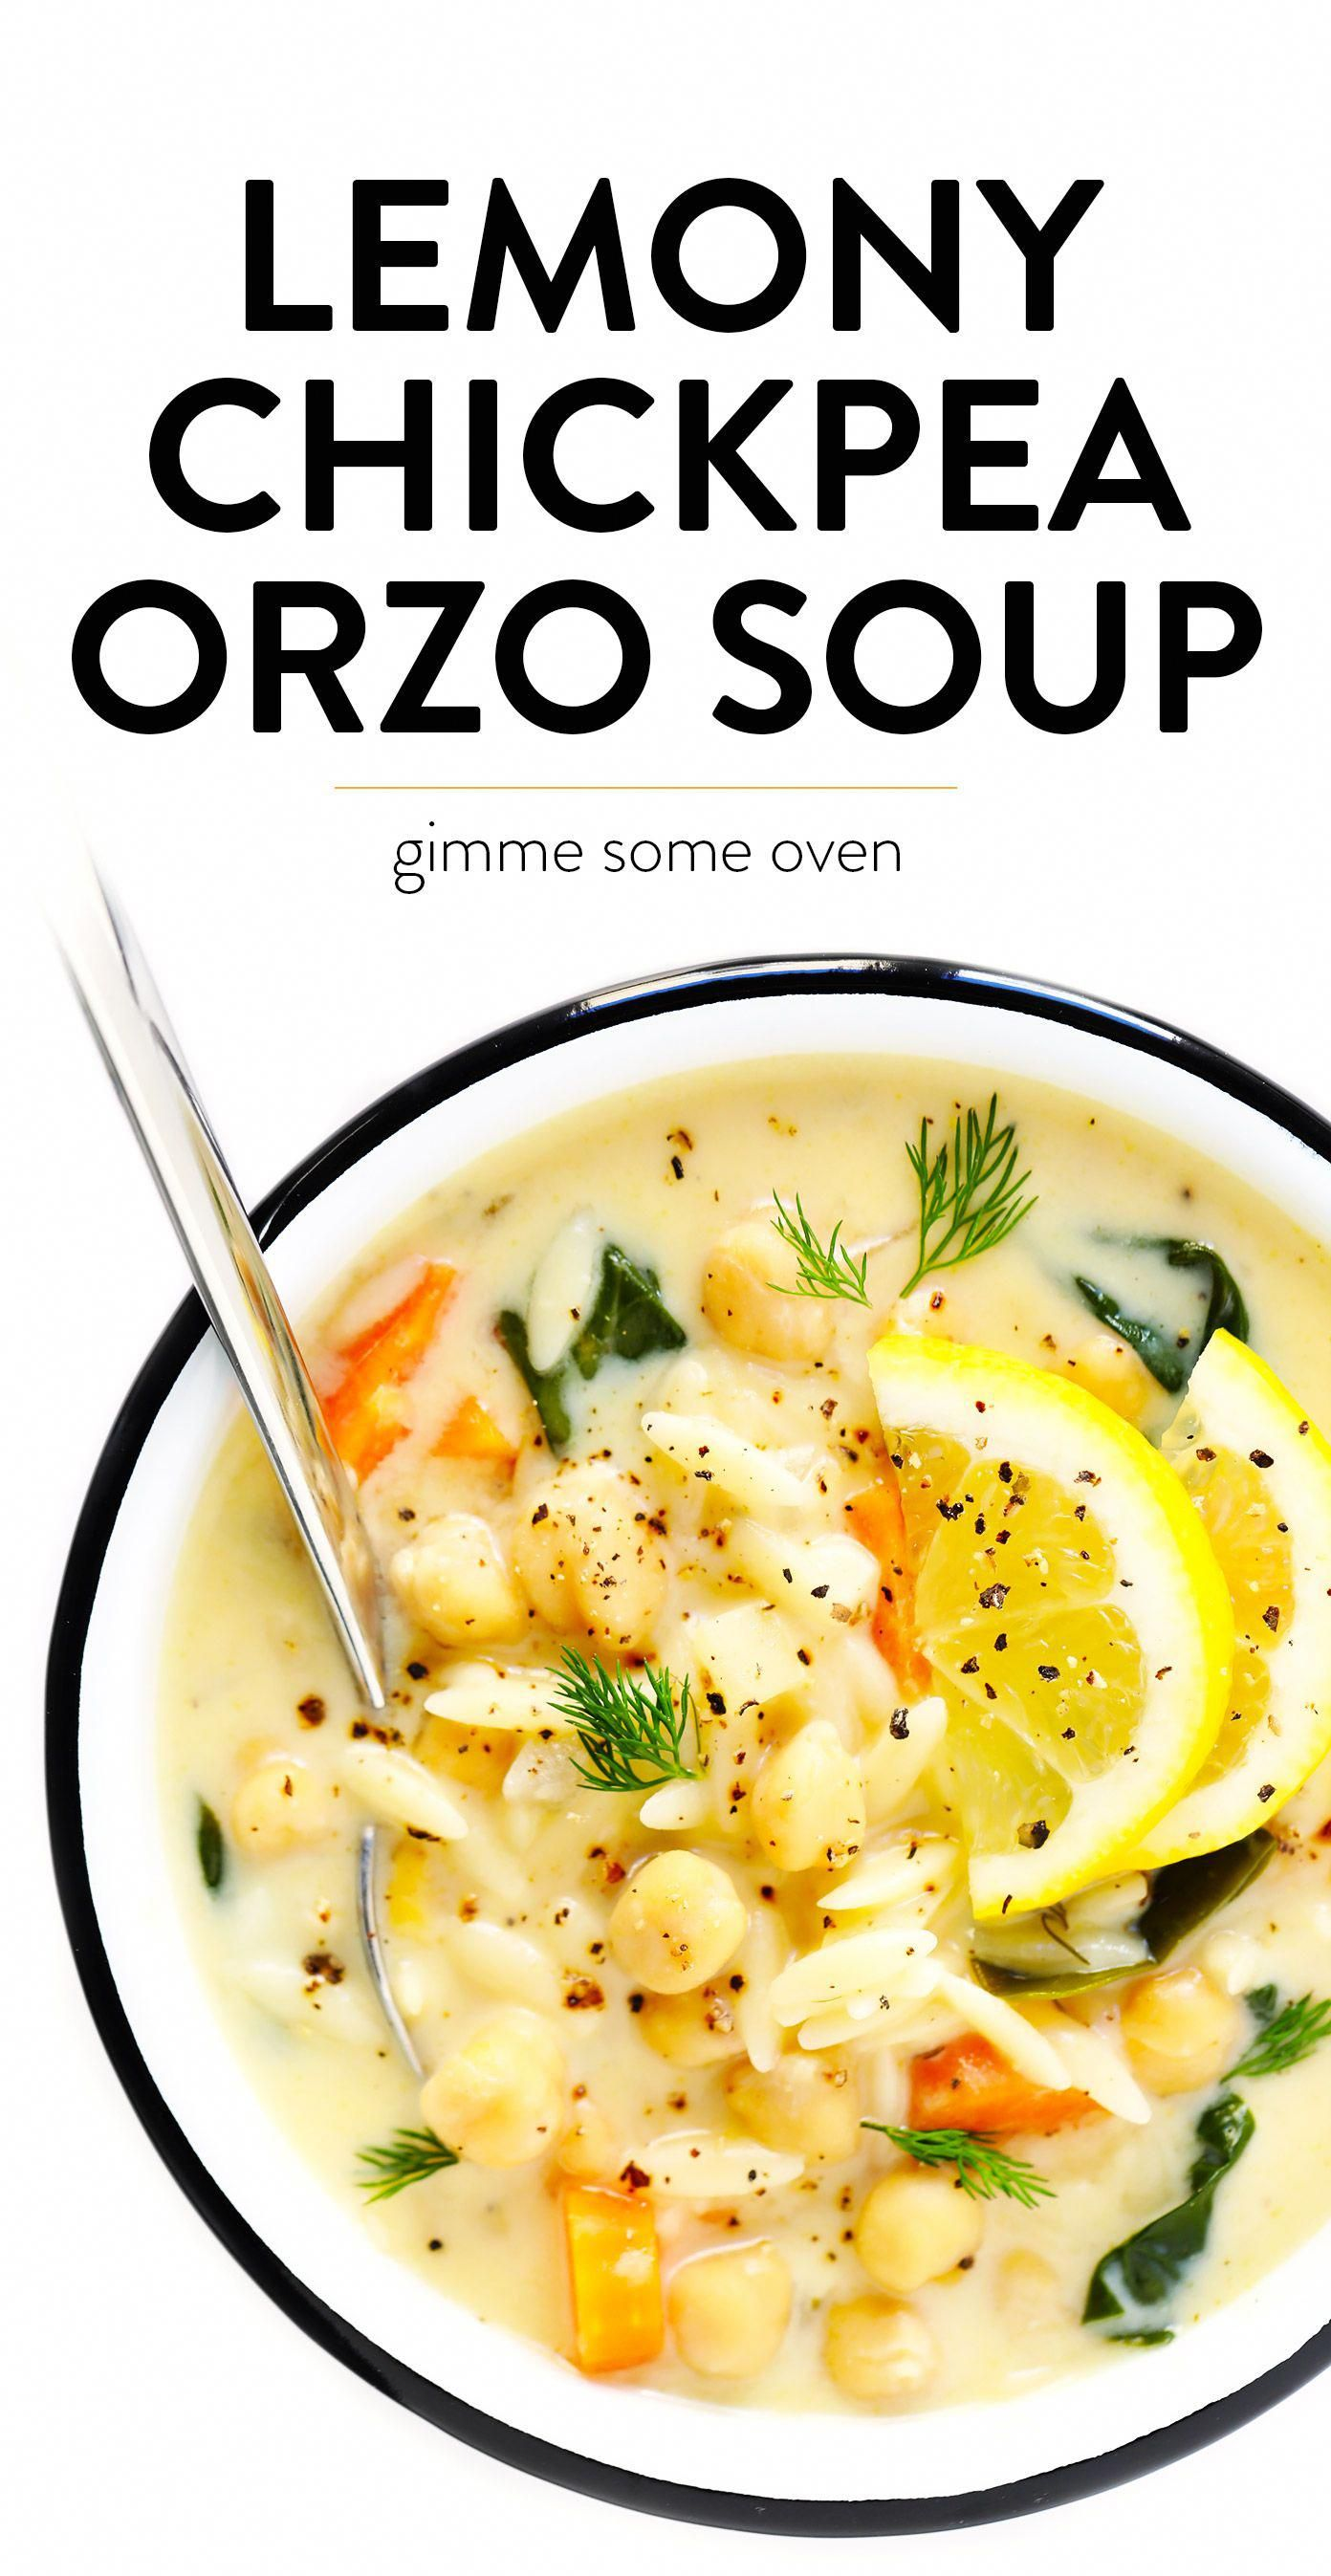 LOVE this Lemony Orzo Chickpea Soup recipe! It's a vegetarian spin on Greek avgolemono soup, bright